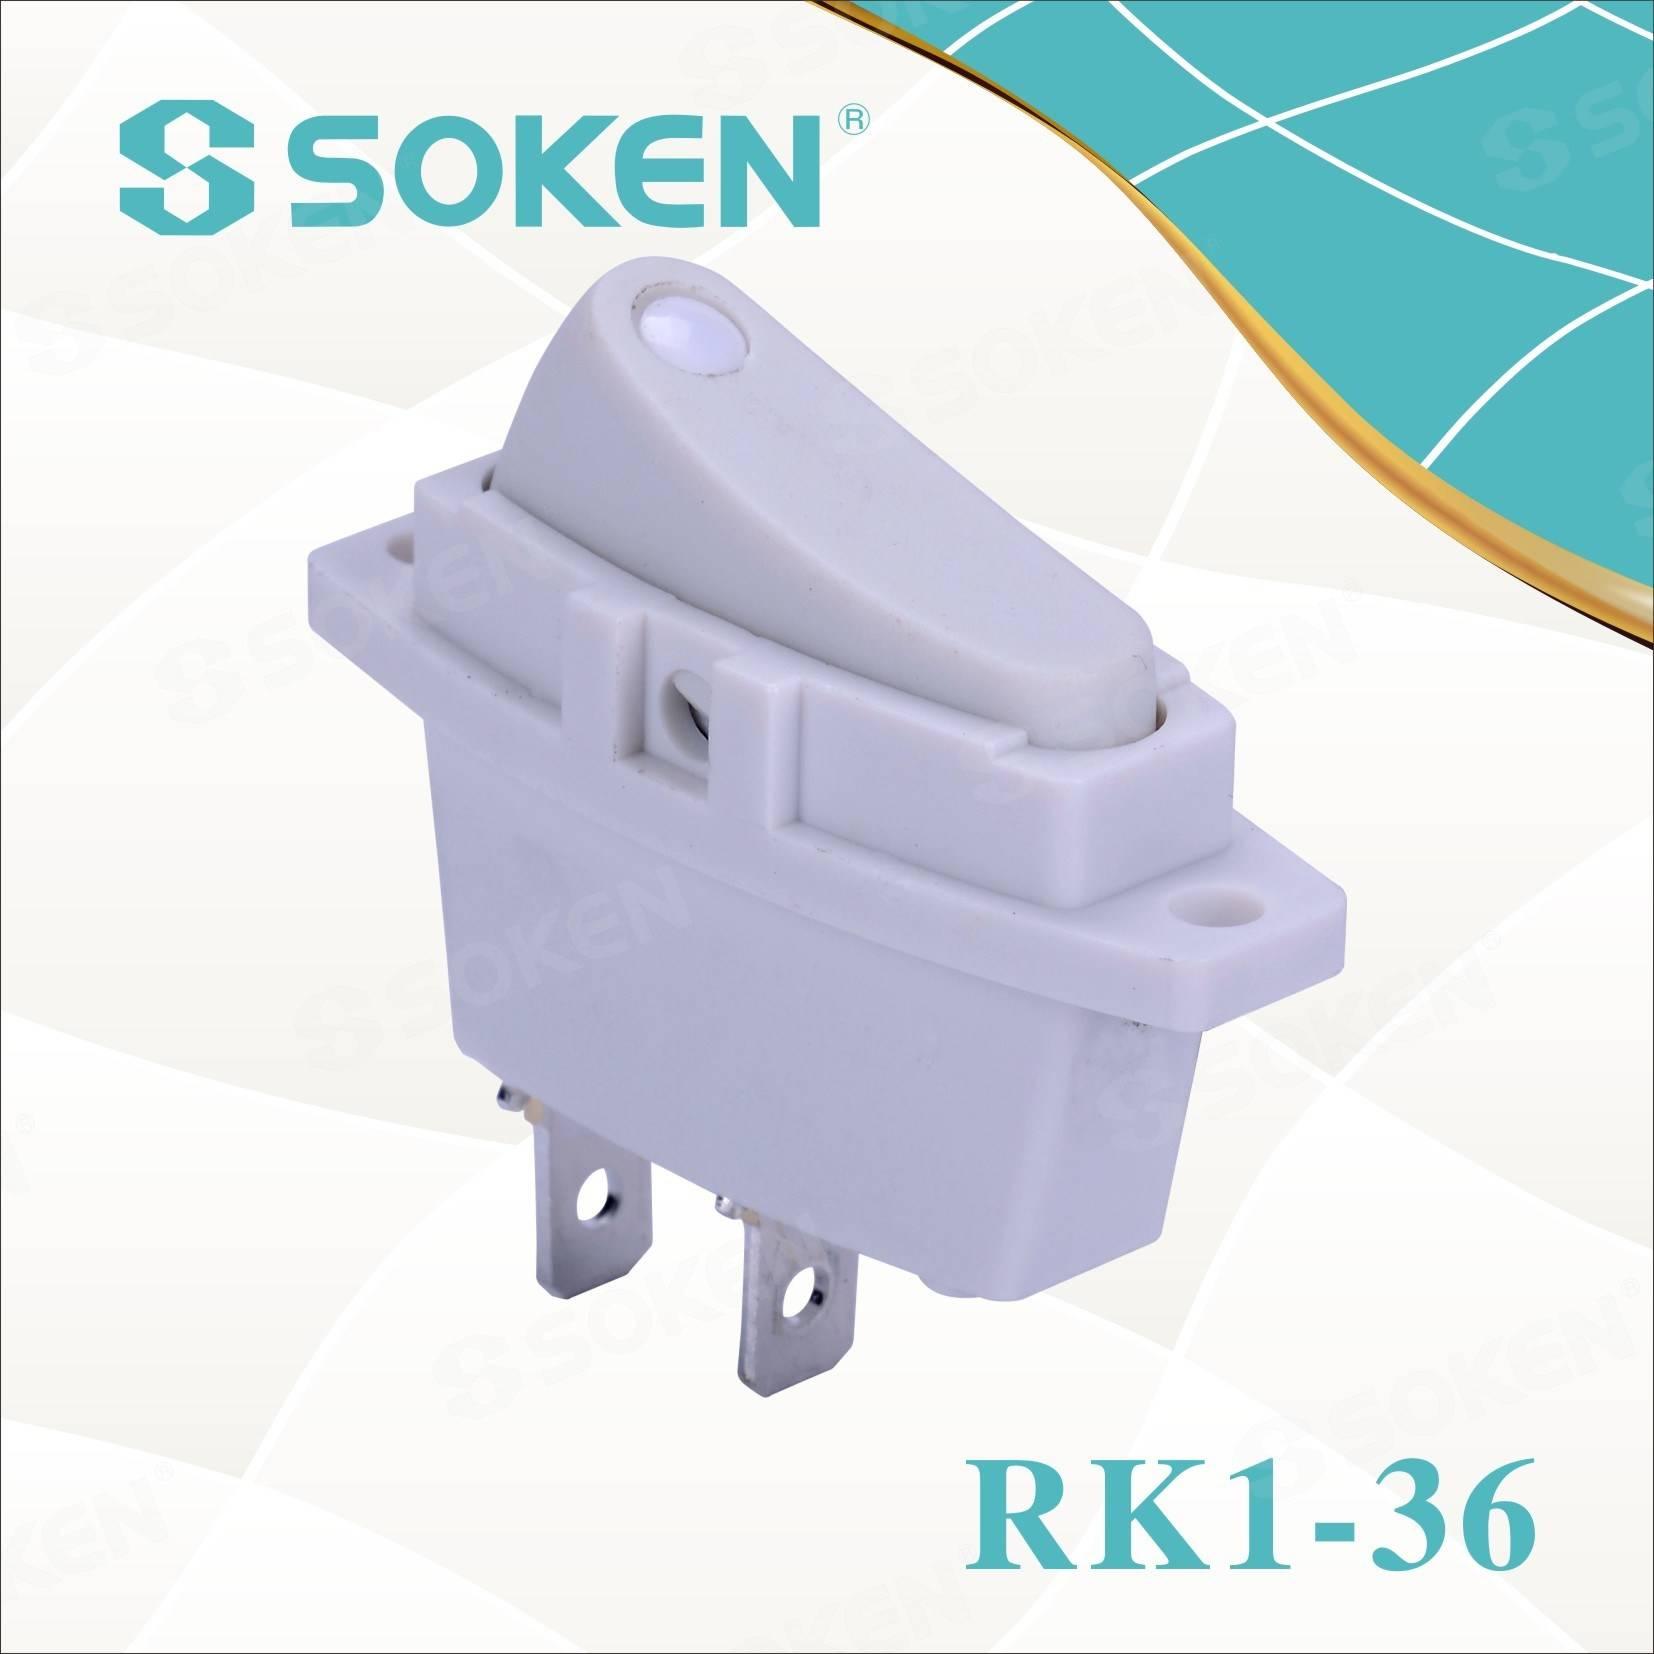 Soken Rk1-36 1X1 վրա off Rocker Switch